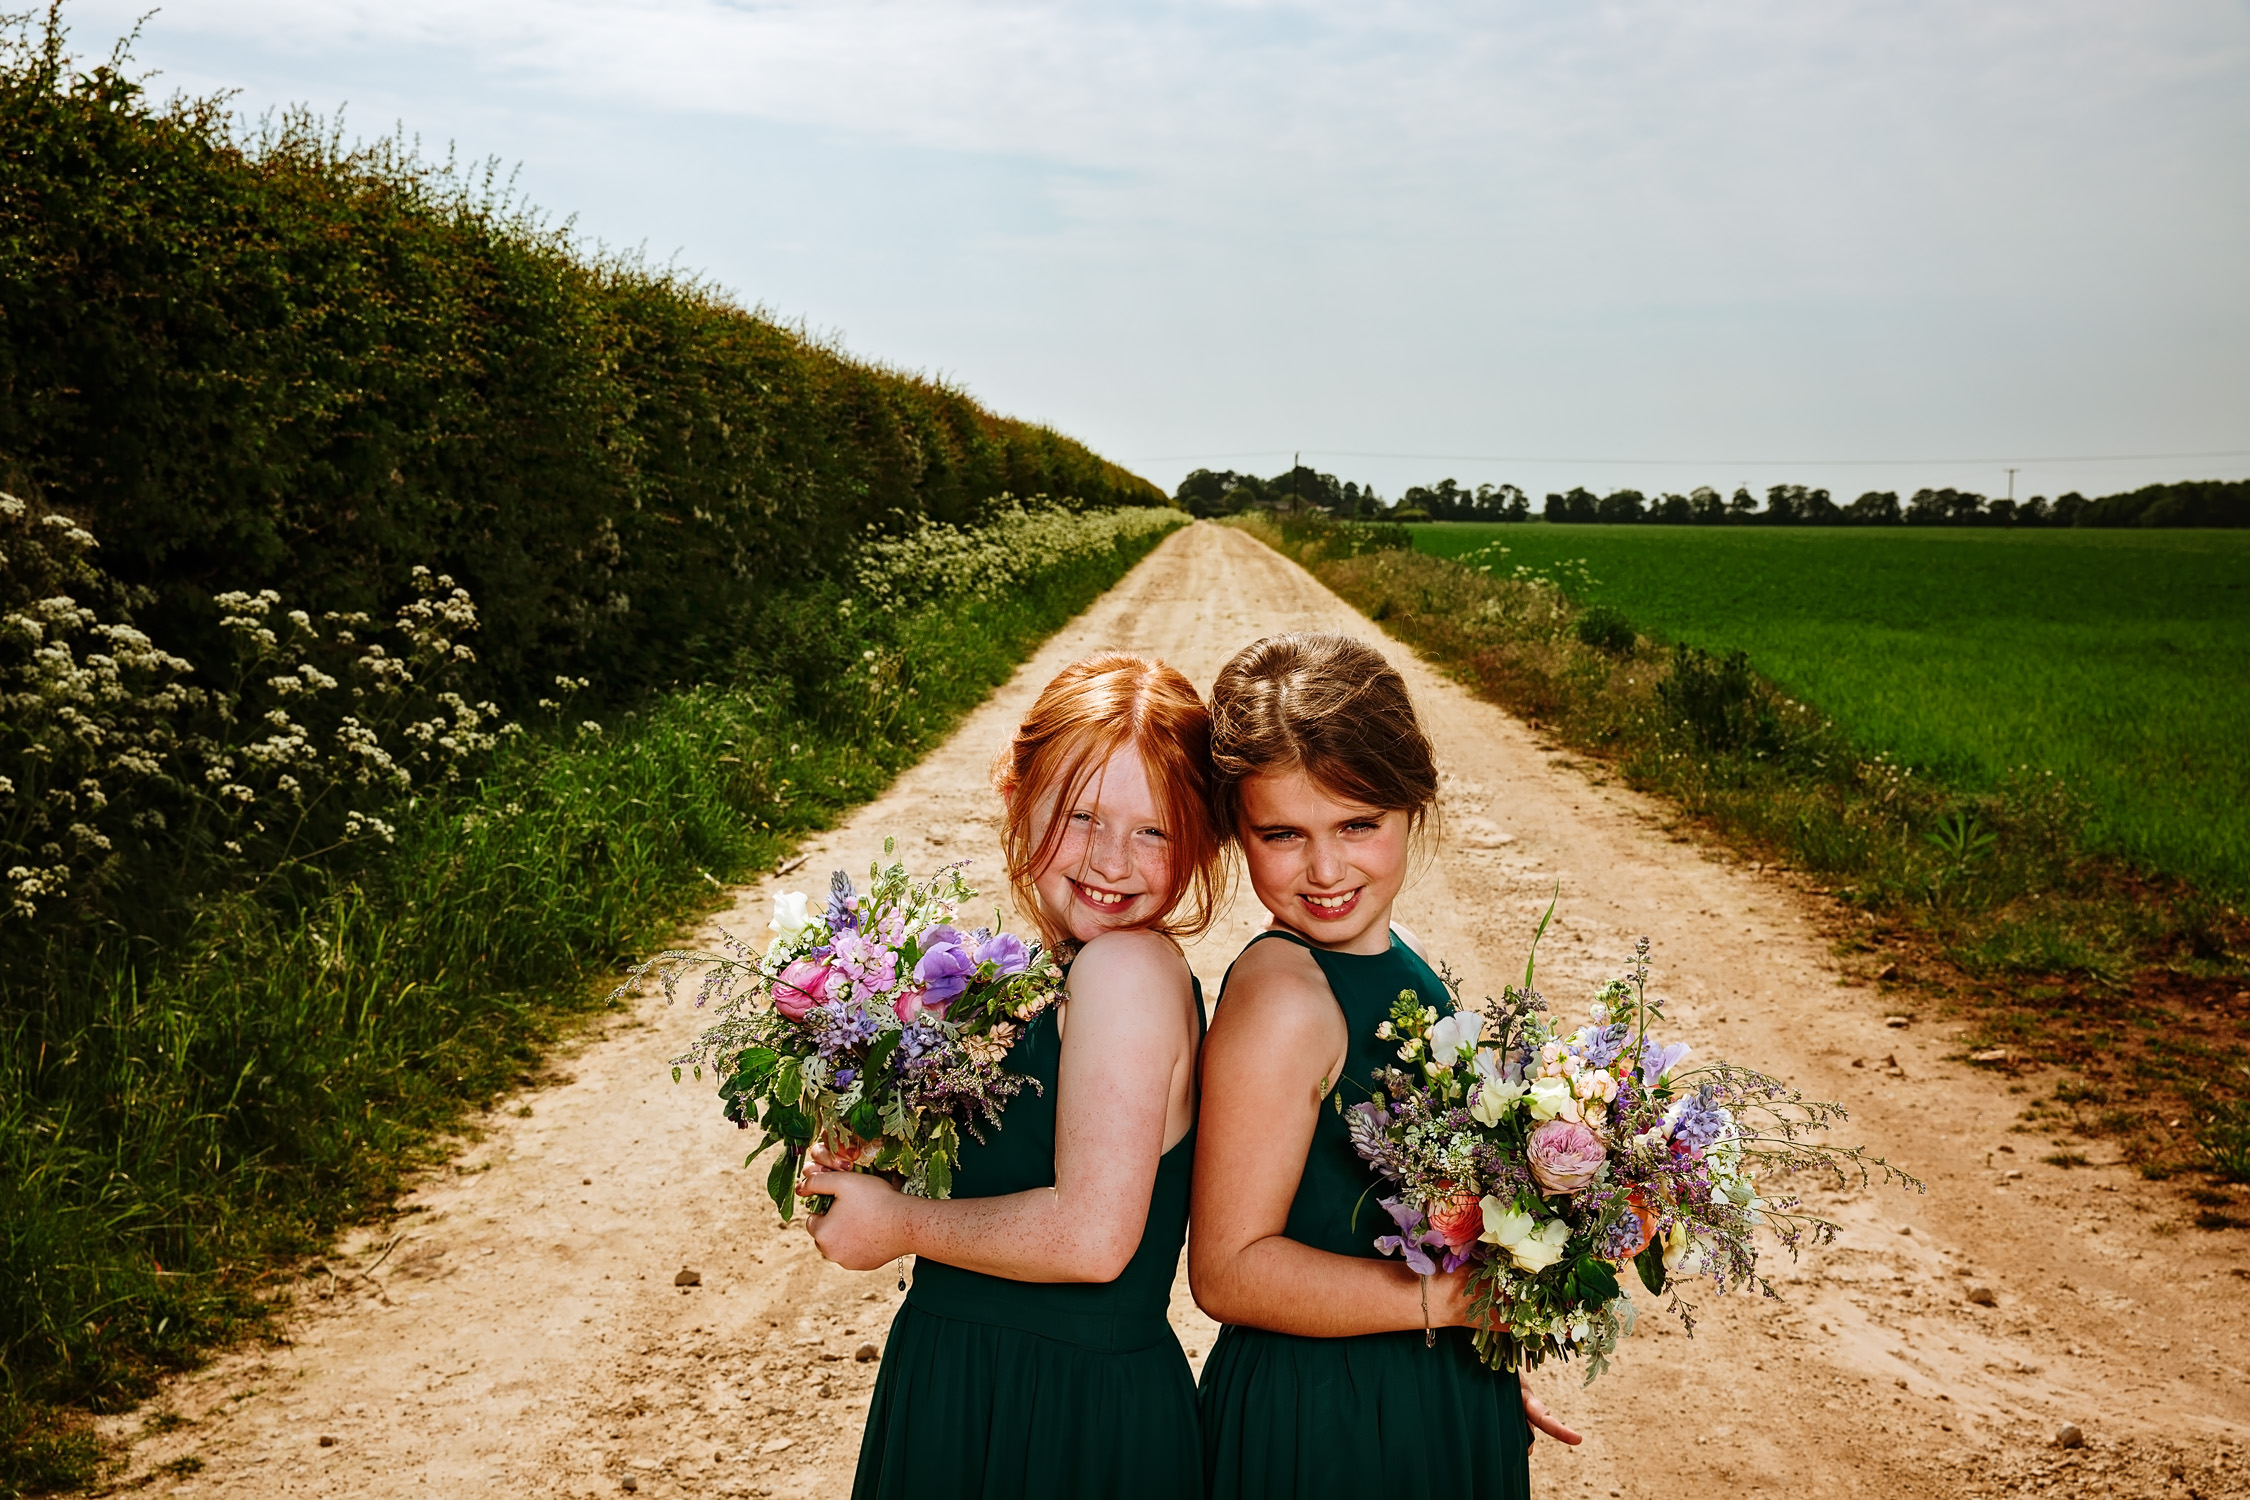 Flower girls in the lane portrait photography